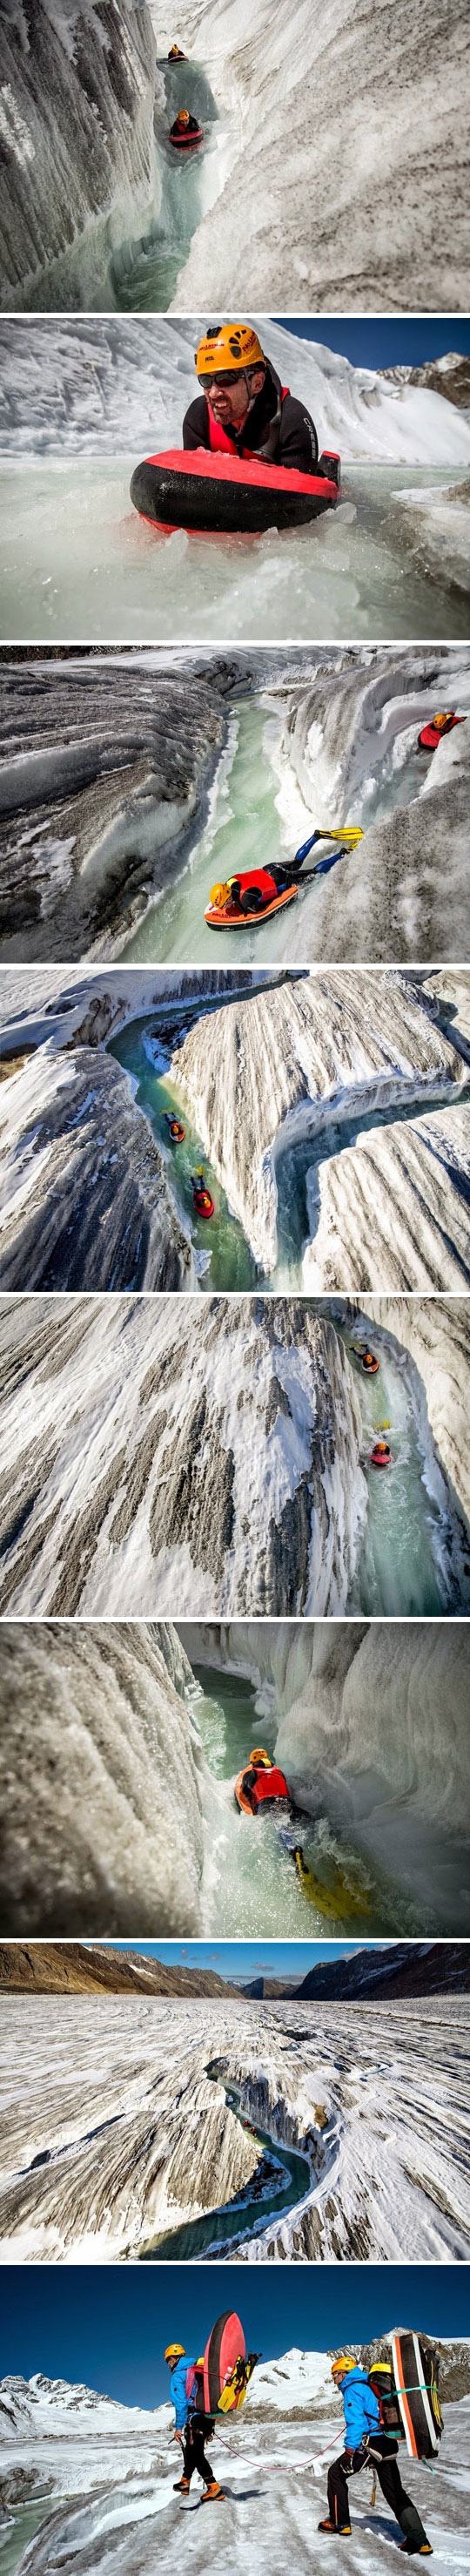 When You Turn A Glacier Into A Water Slide